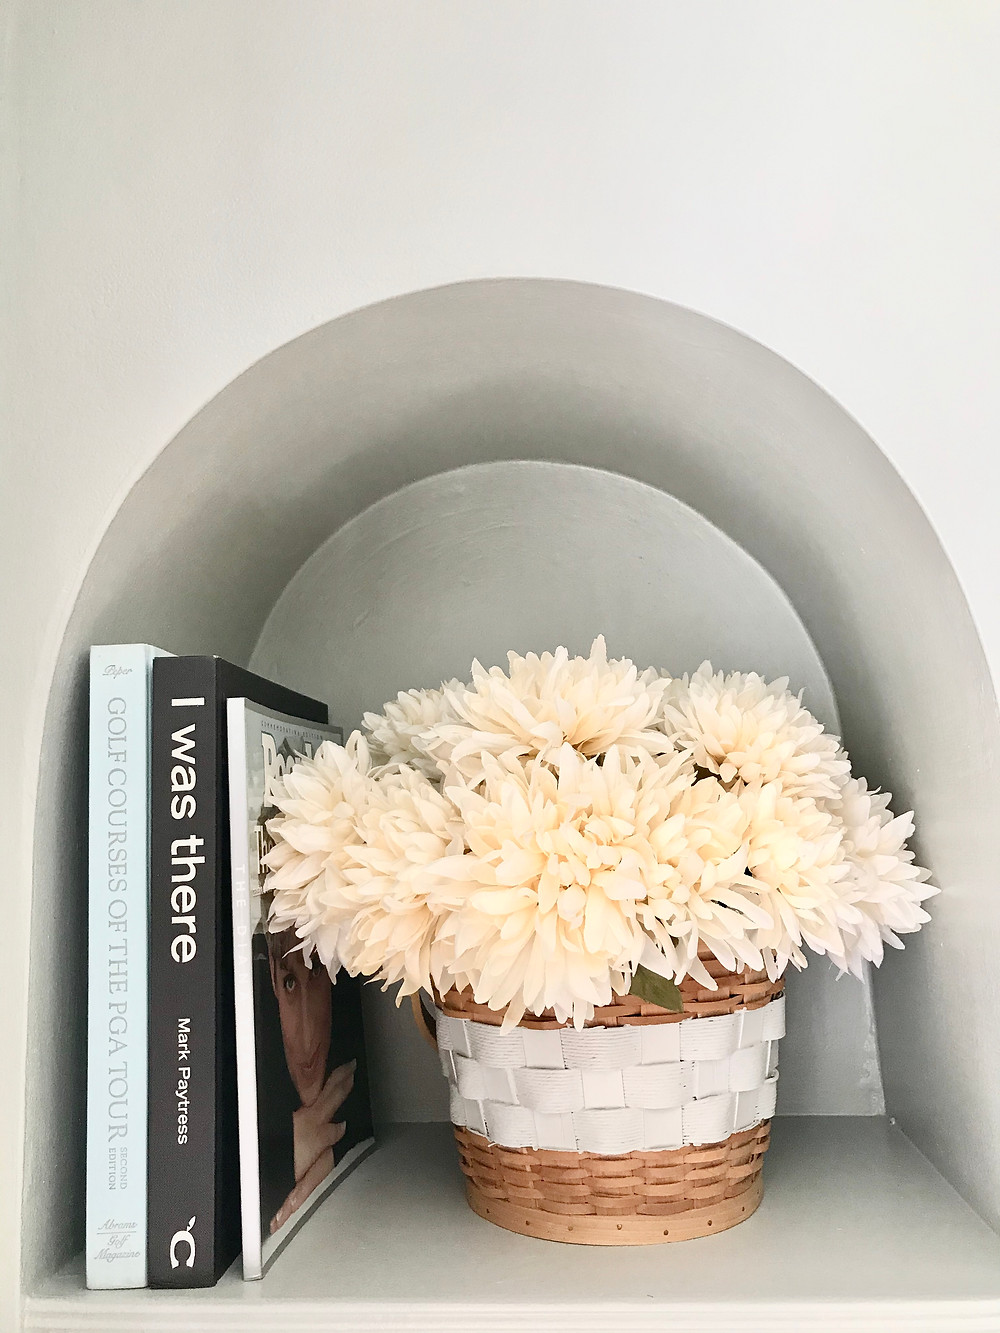 Built-ins shelf styling home decor books flowers